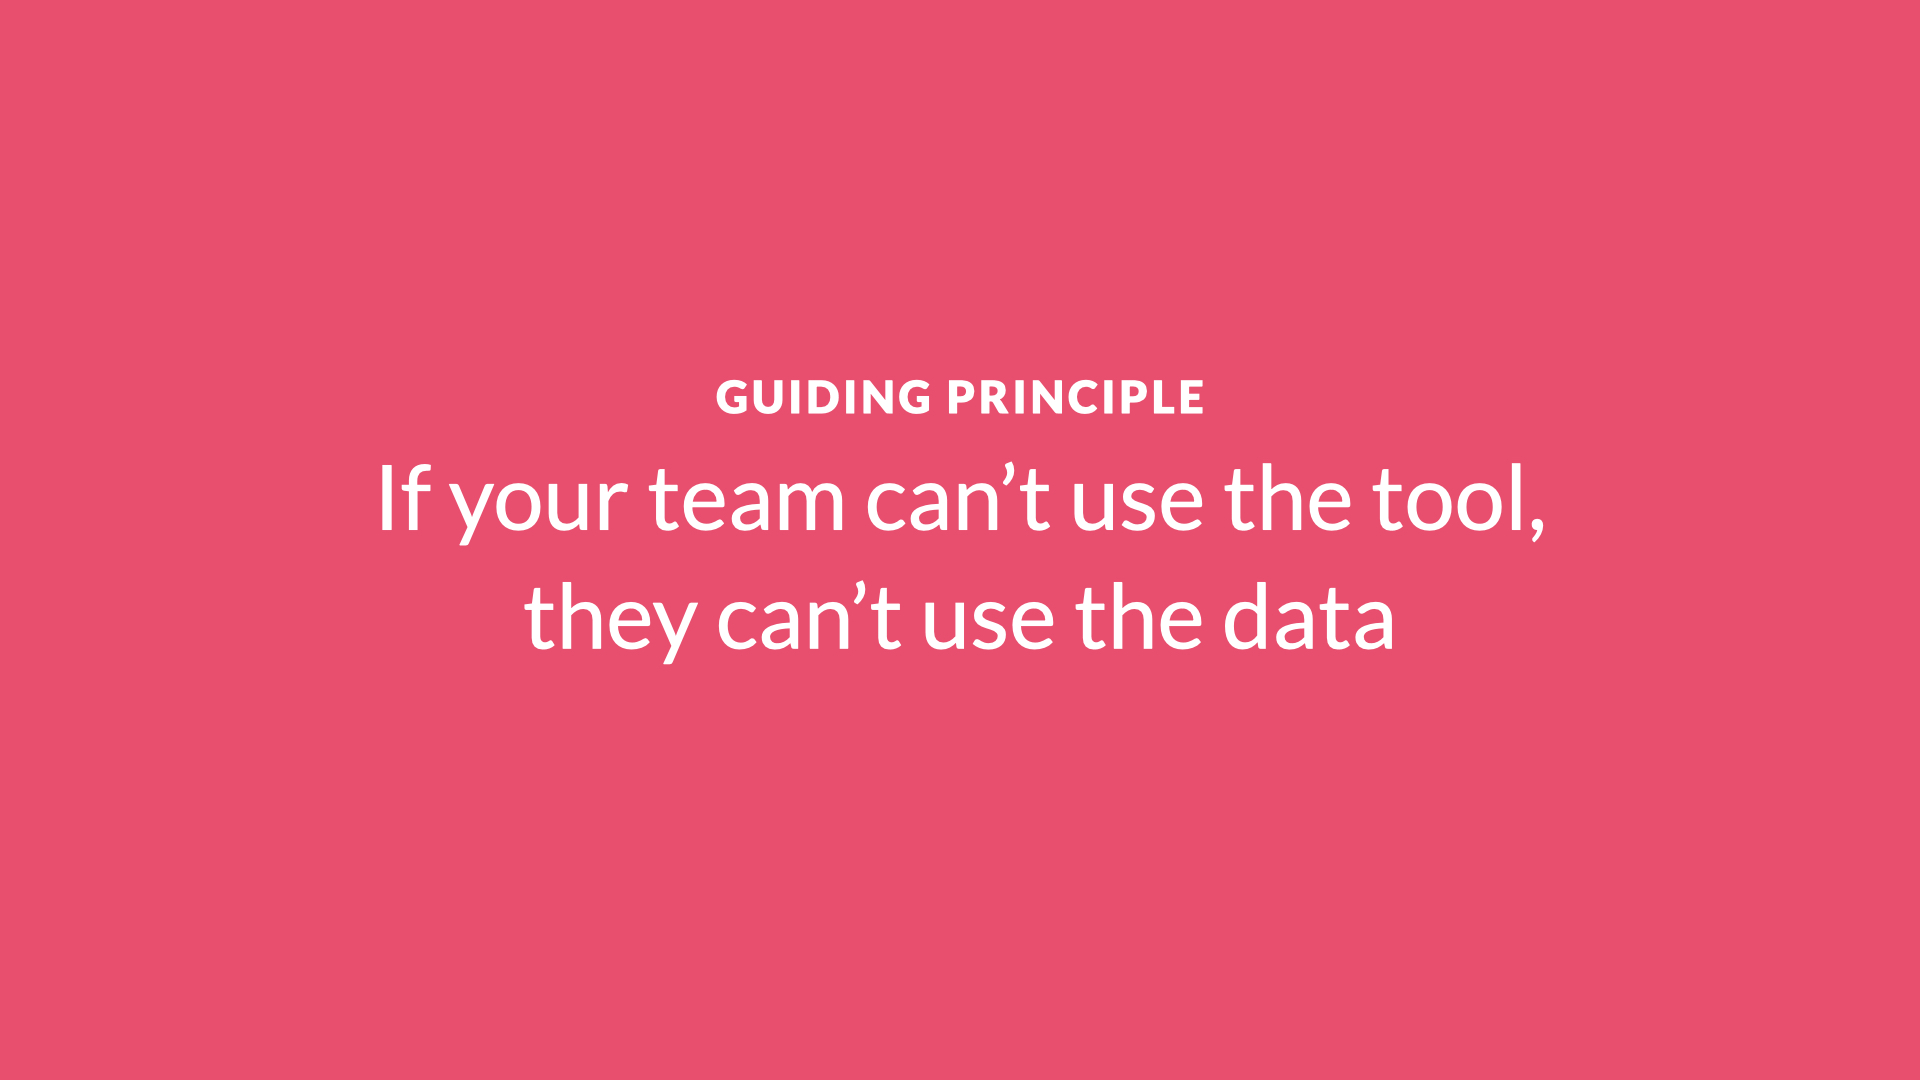 If your team can't use the tool, they can't use the data